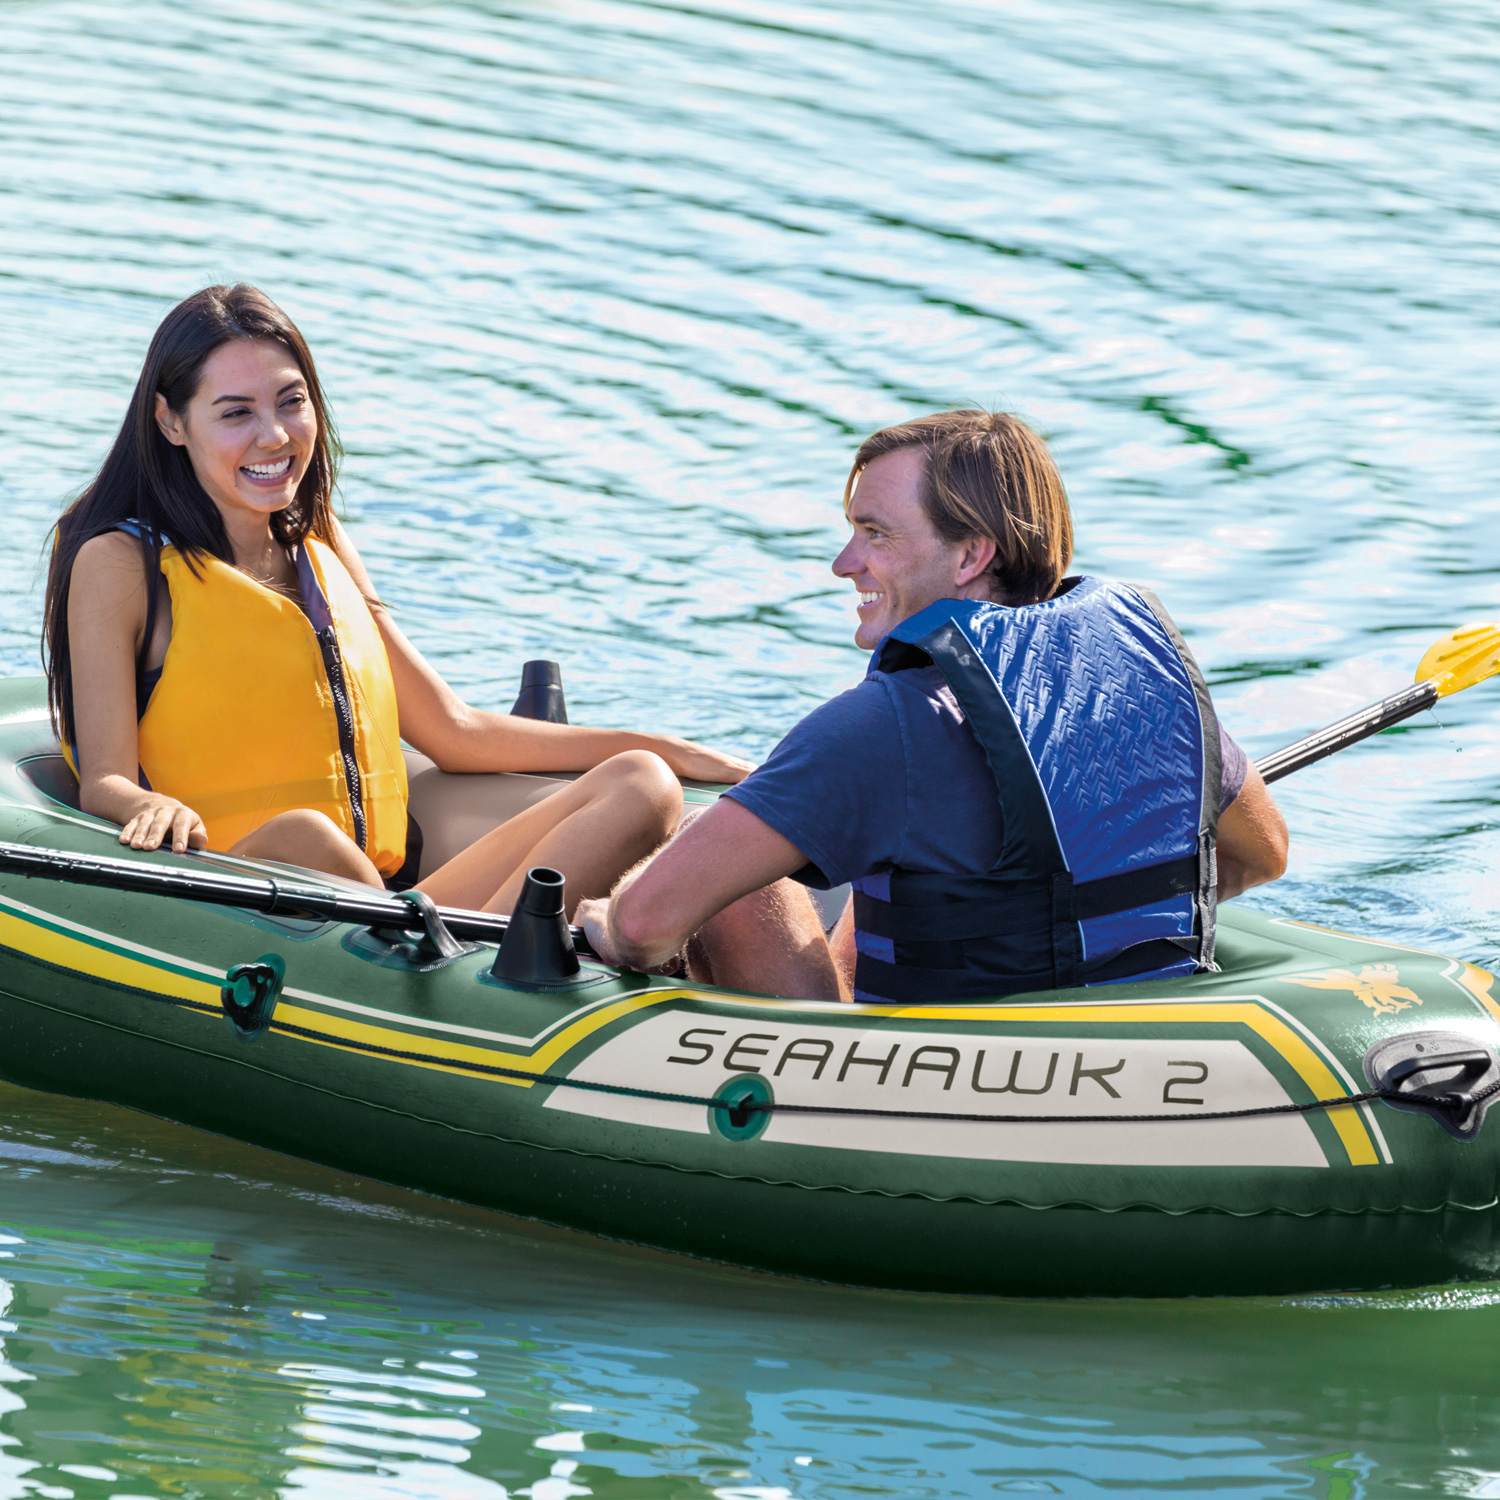 "Intex Seahawk 2 Two-Person Inflatable Boat, 93"" x 45"" x 16"""